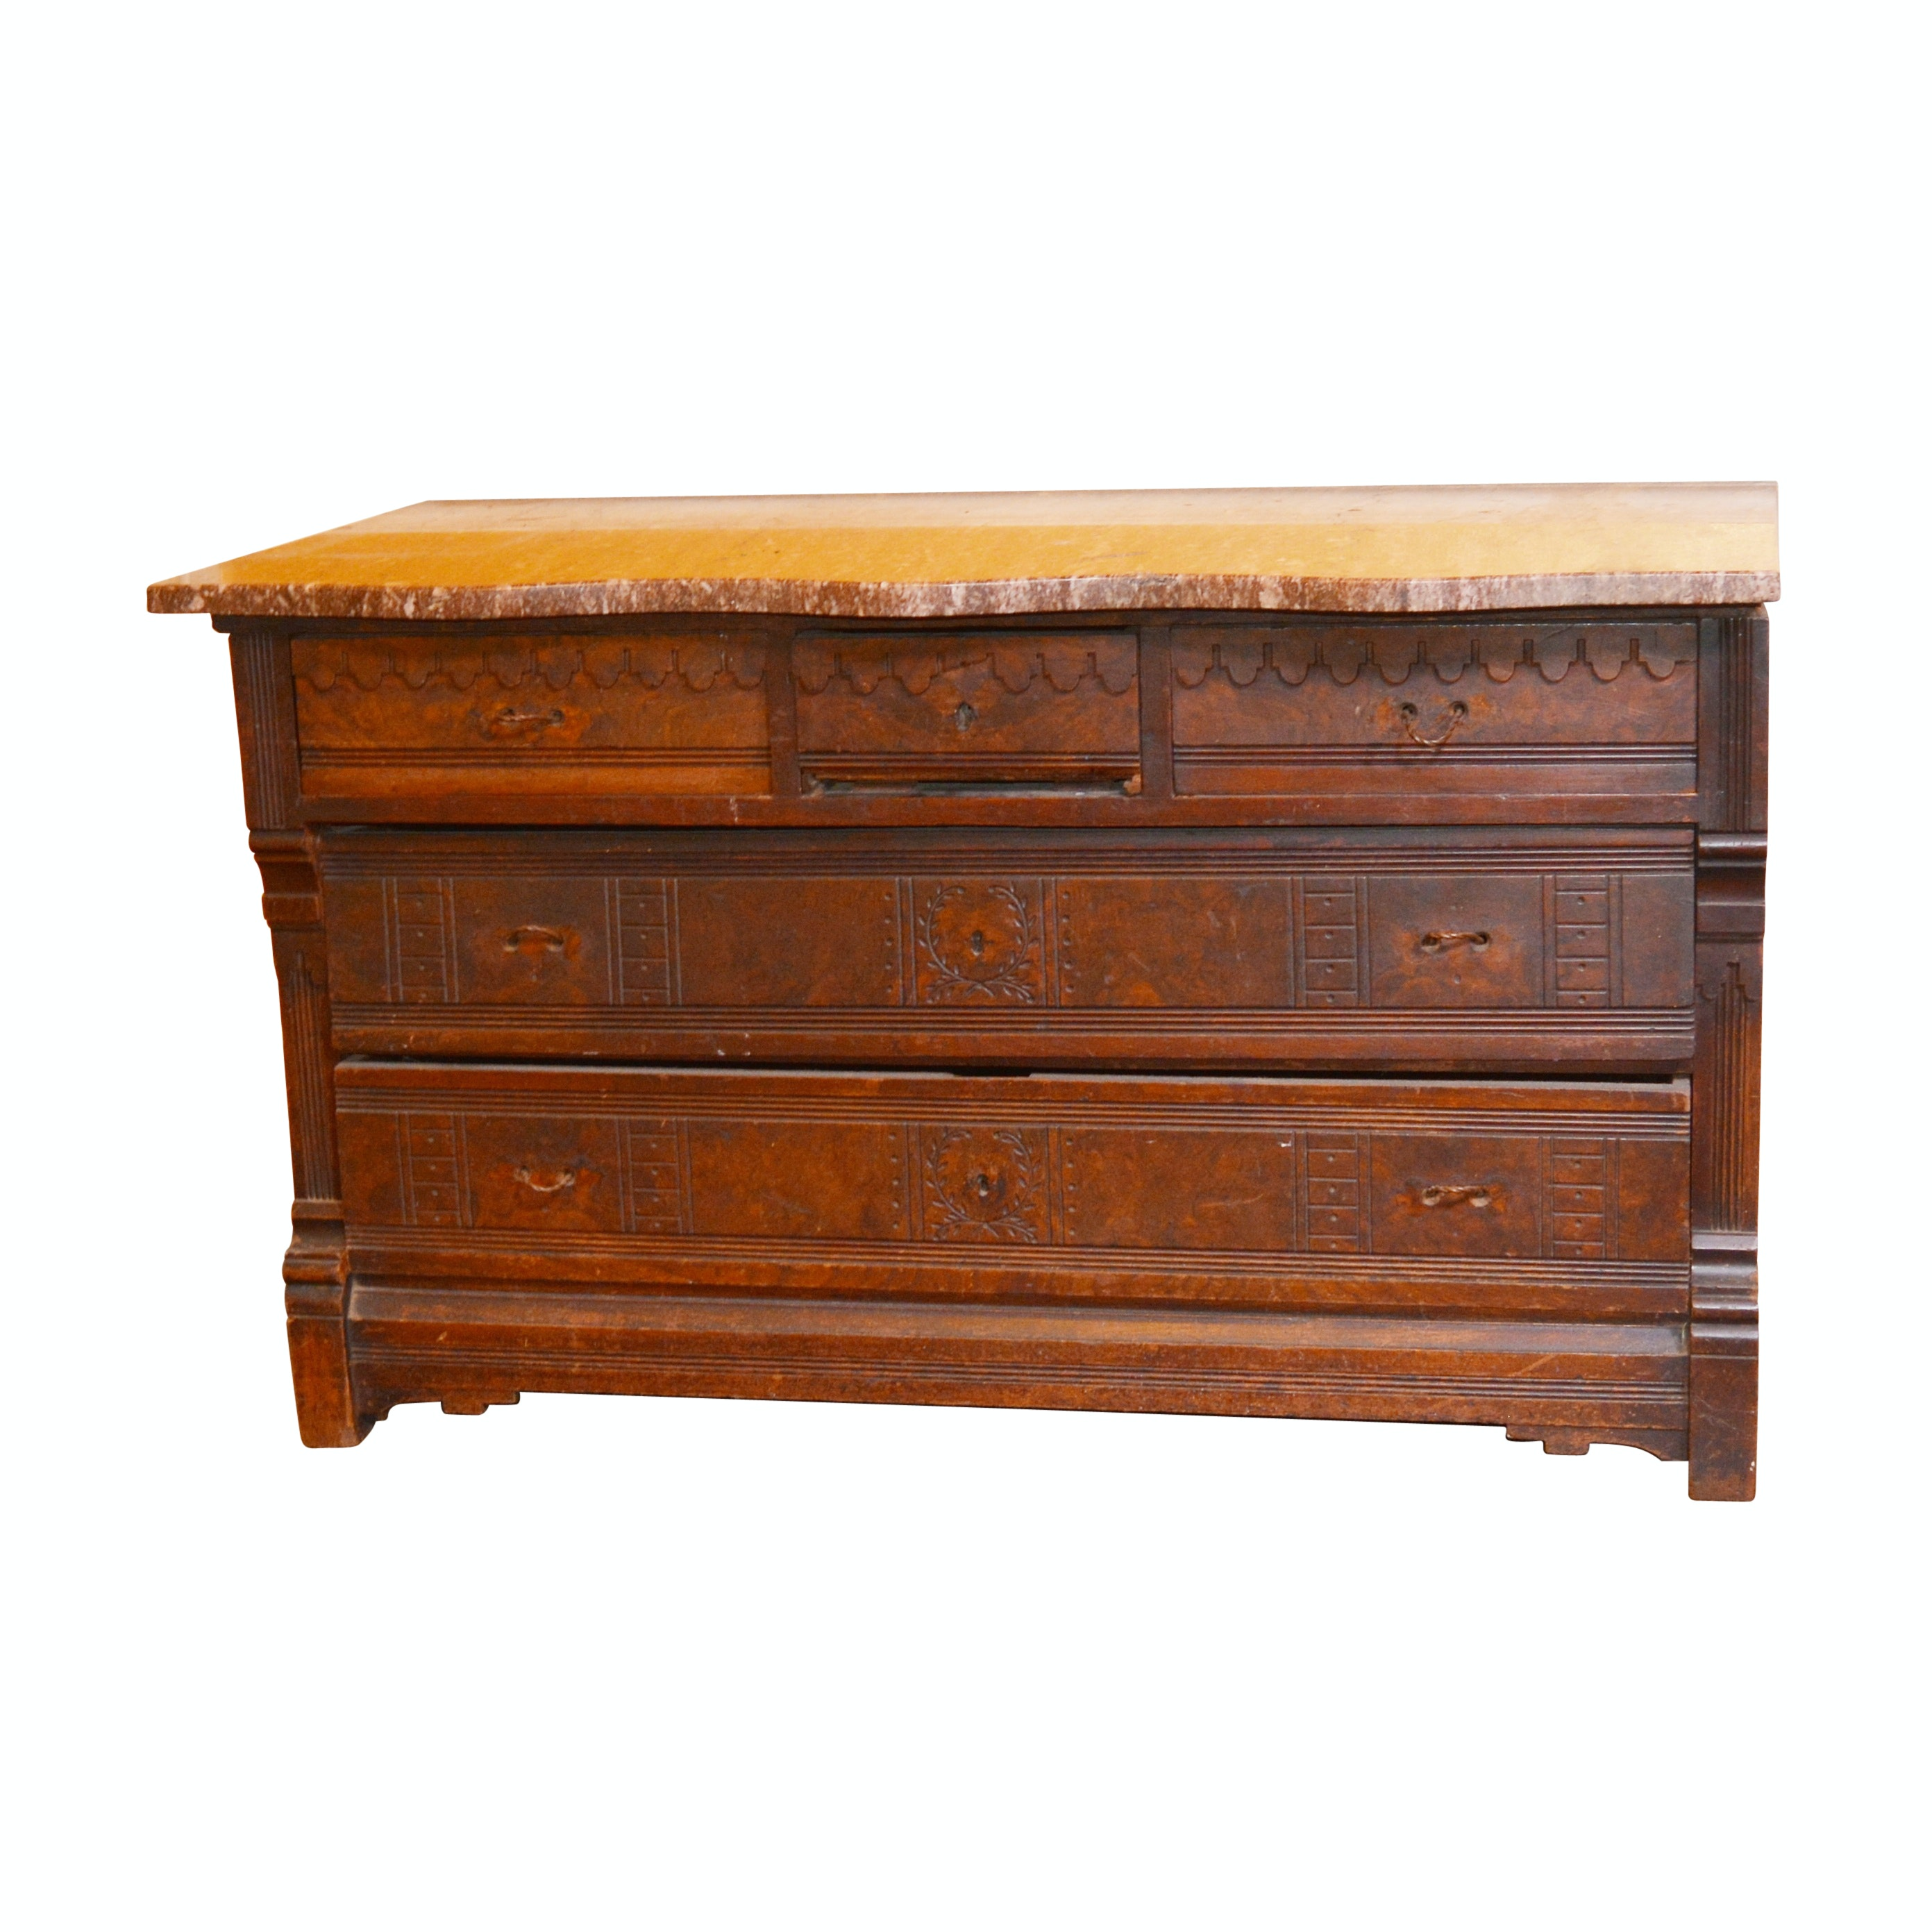 Eastlake Style Burled Walnut Chest of Drawers, Late 19th Century